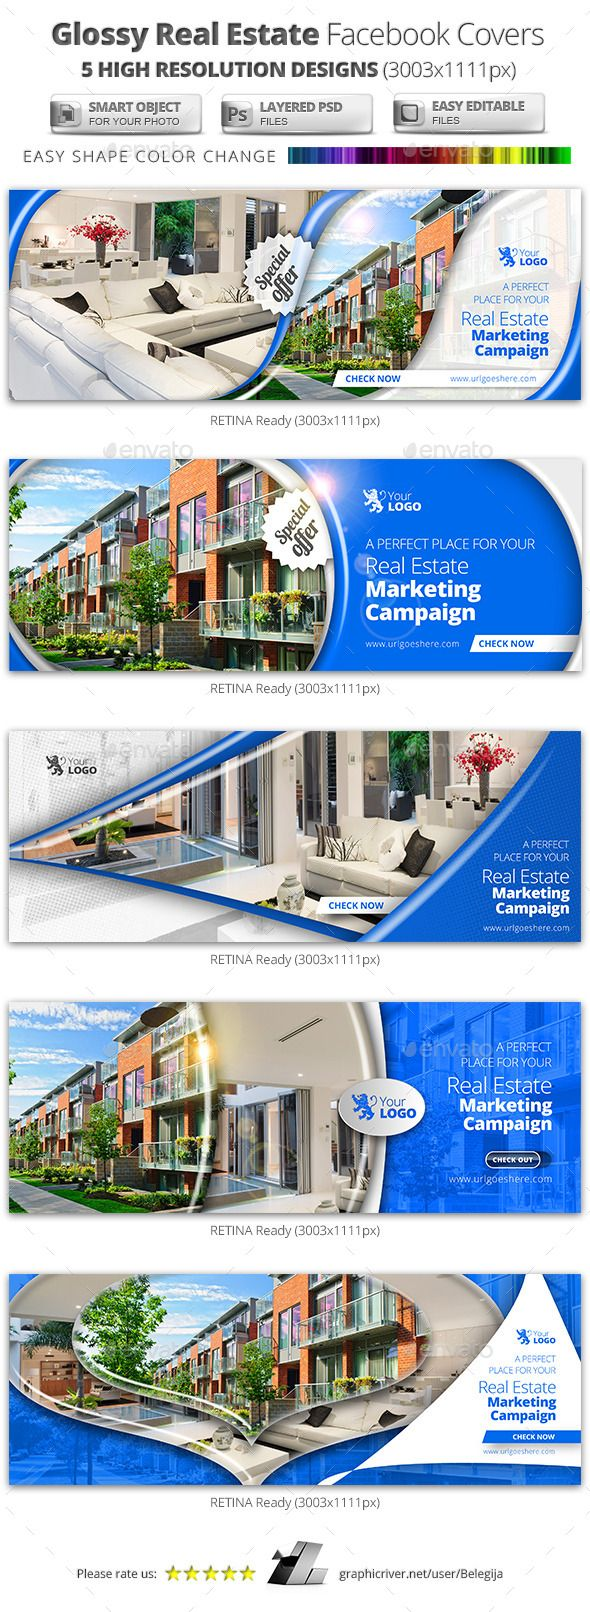 Glossy Real Estate Facebook Covers Template PSD #design Download: http://graphicriver.net/item/glossy-real-estate-facebook-covers/11264968?ref=ksioks